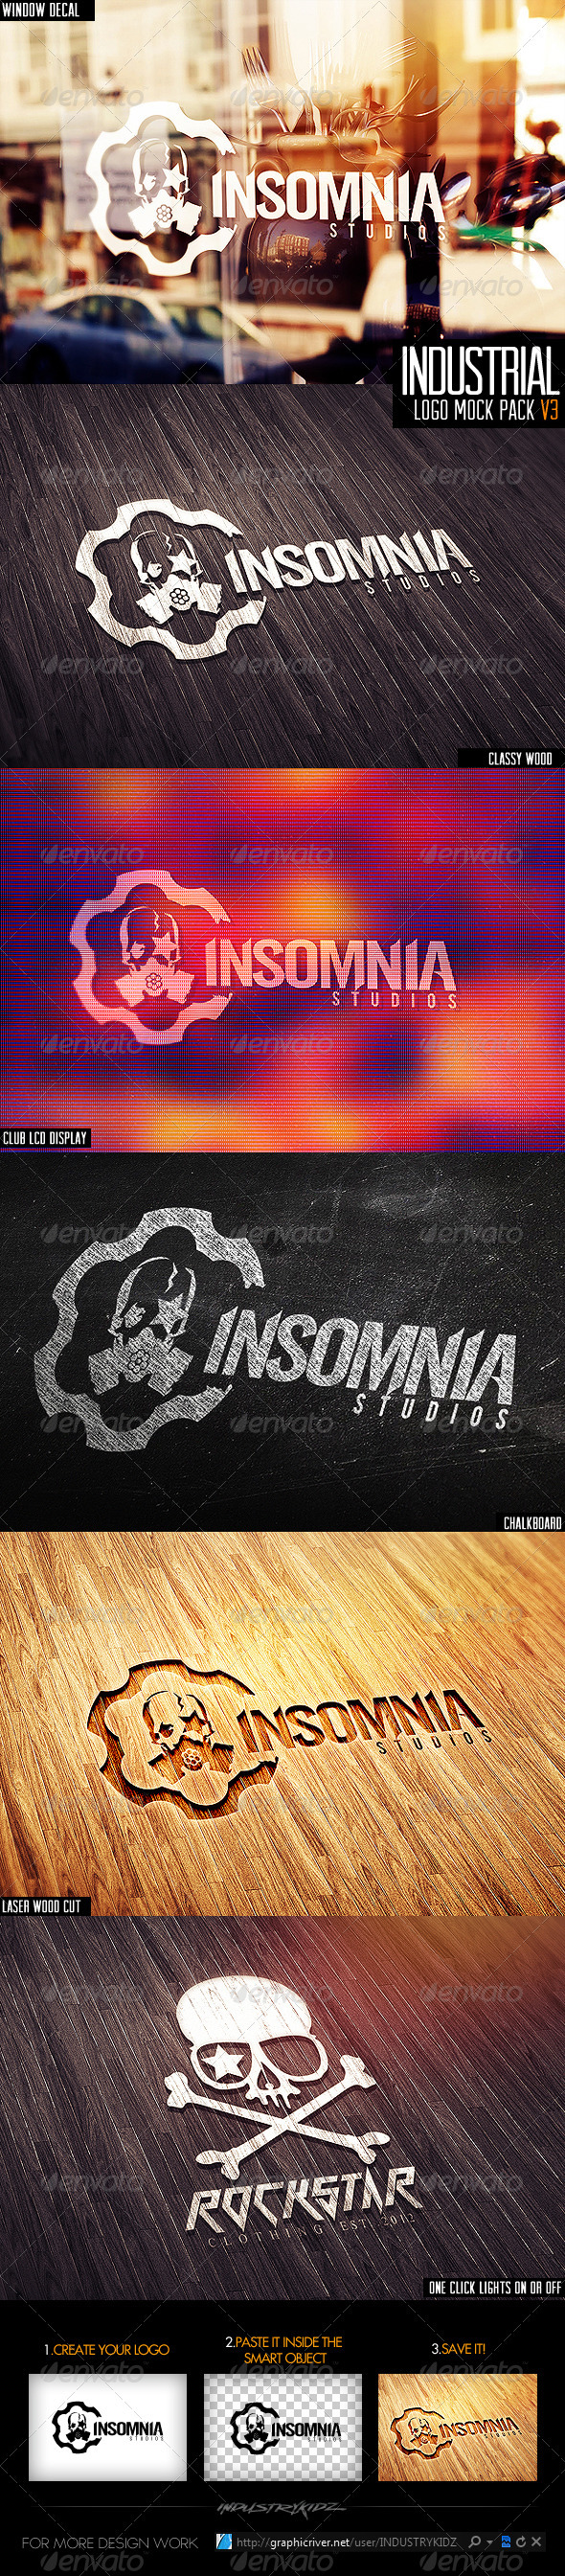 Industrial Photorealistic Logo Mock-Up V3 - Logo Product Mock-Ups